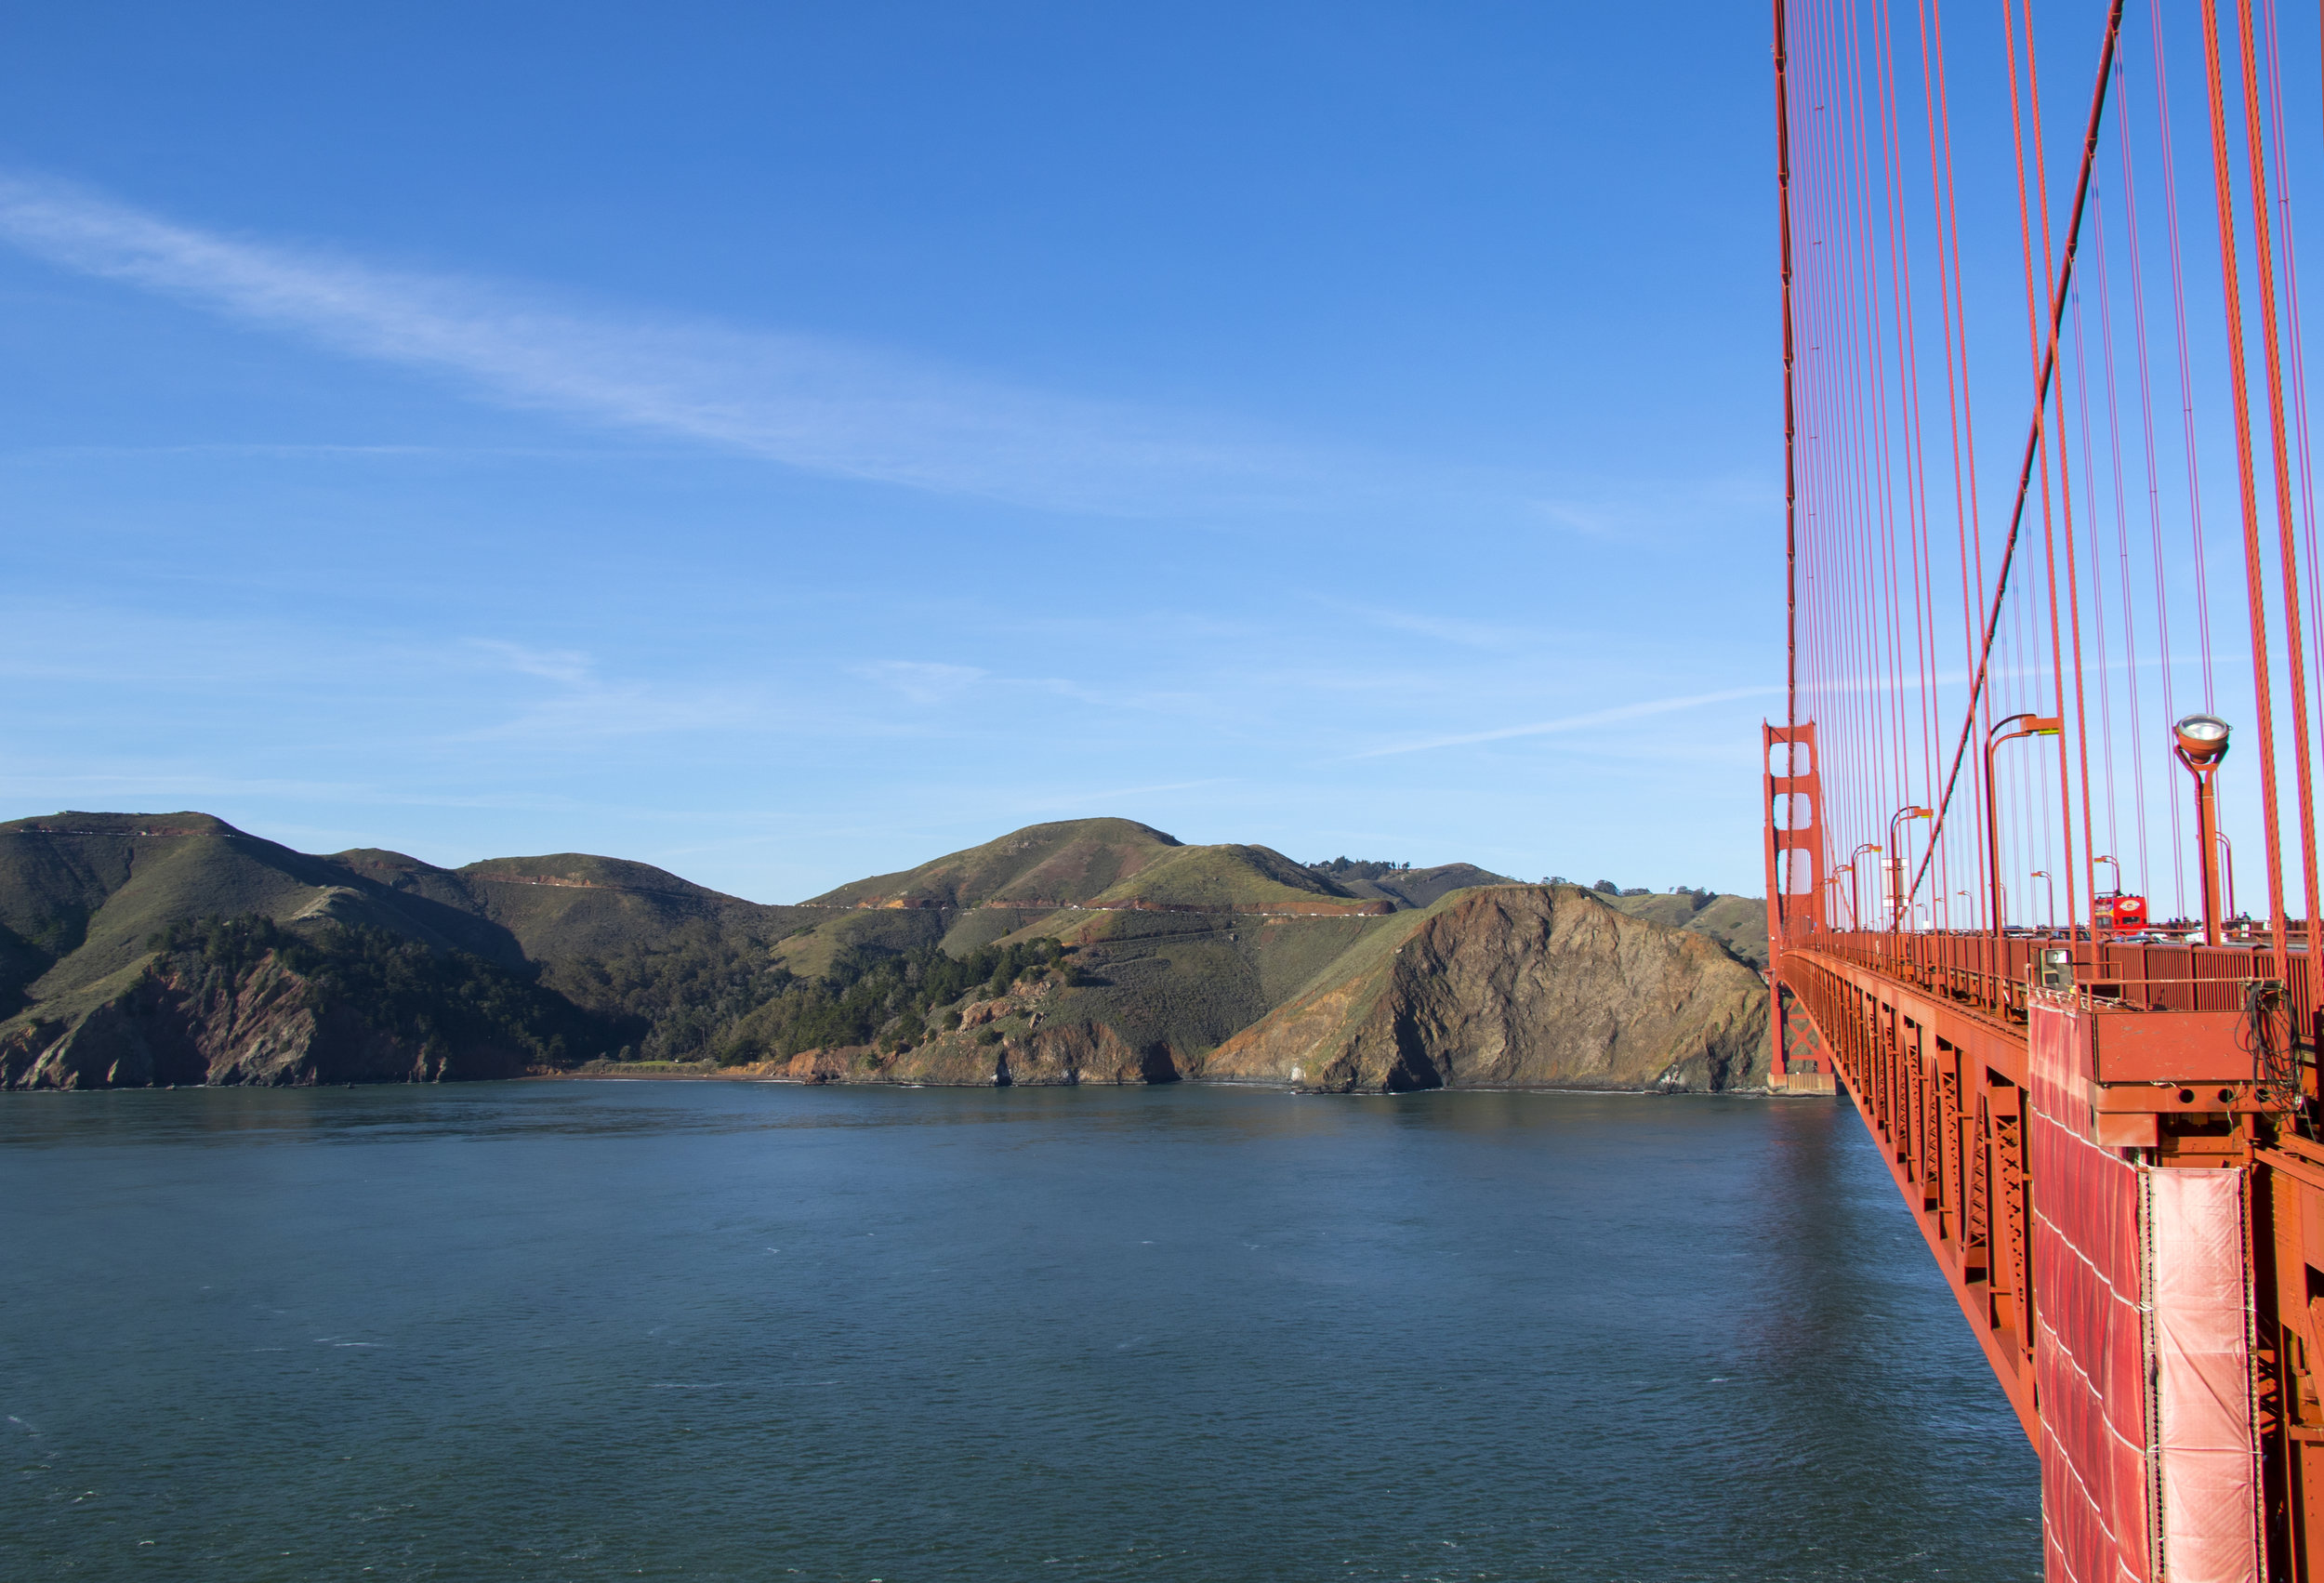 sanfrancisco_goldengatebridge_02.jpg